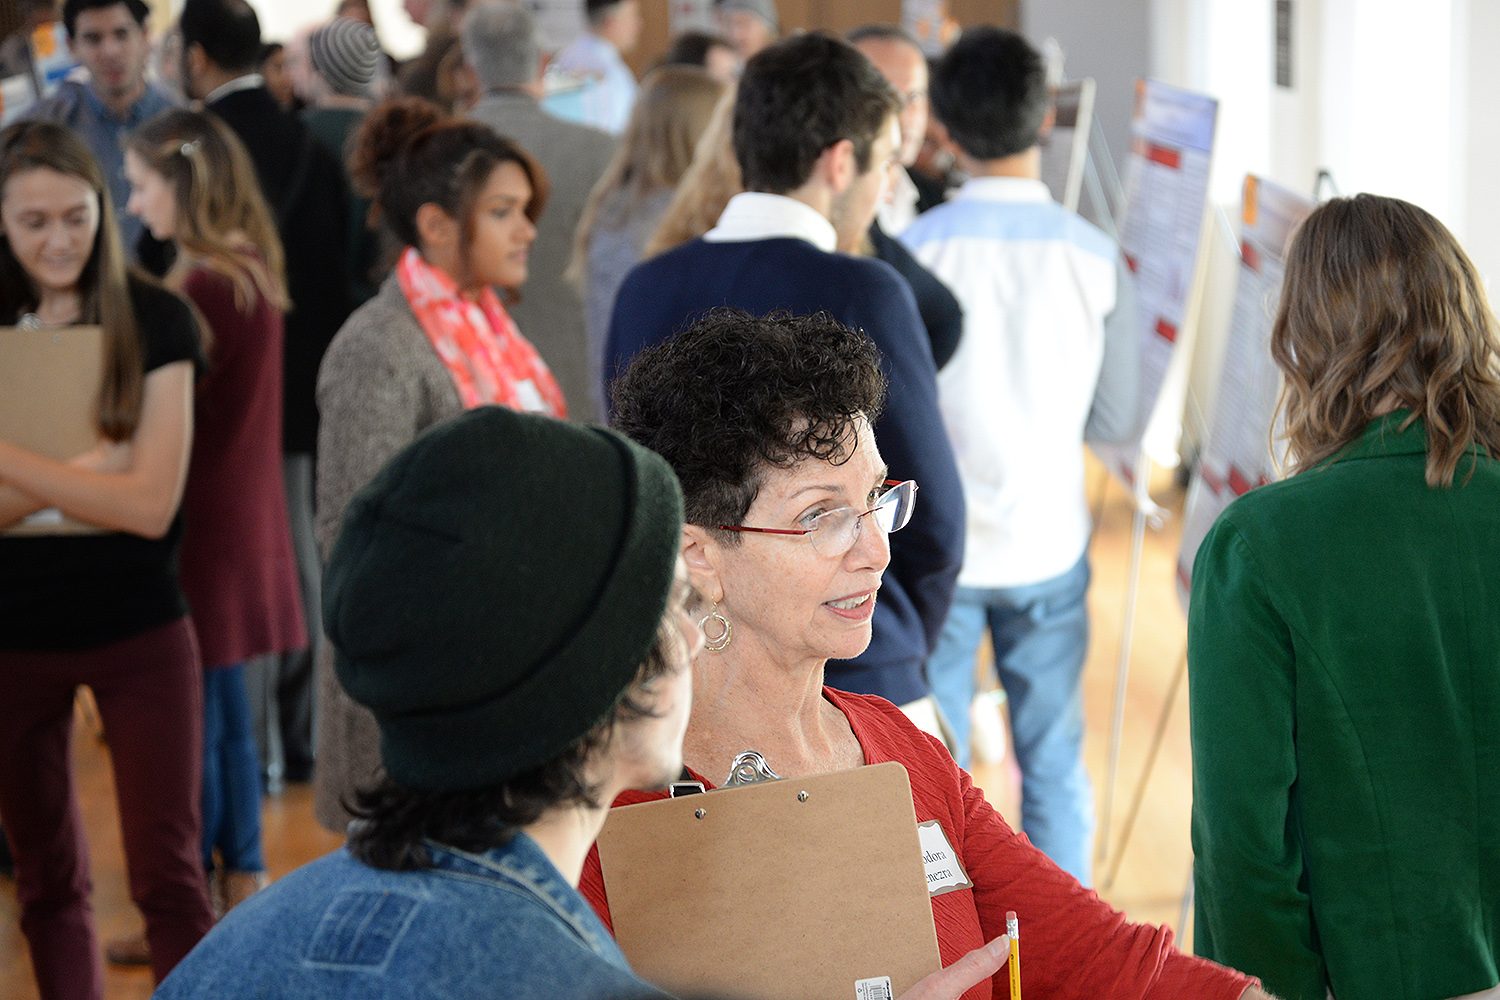 Several Wesleyan faculty, alumni and community members evaluated the students' poster presentations.